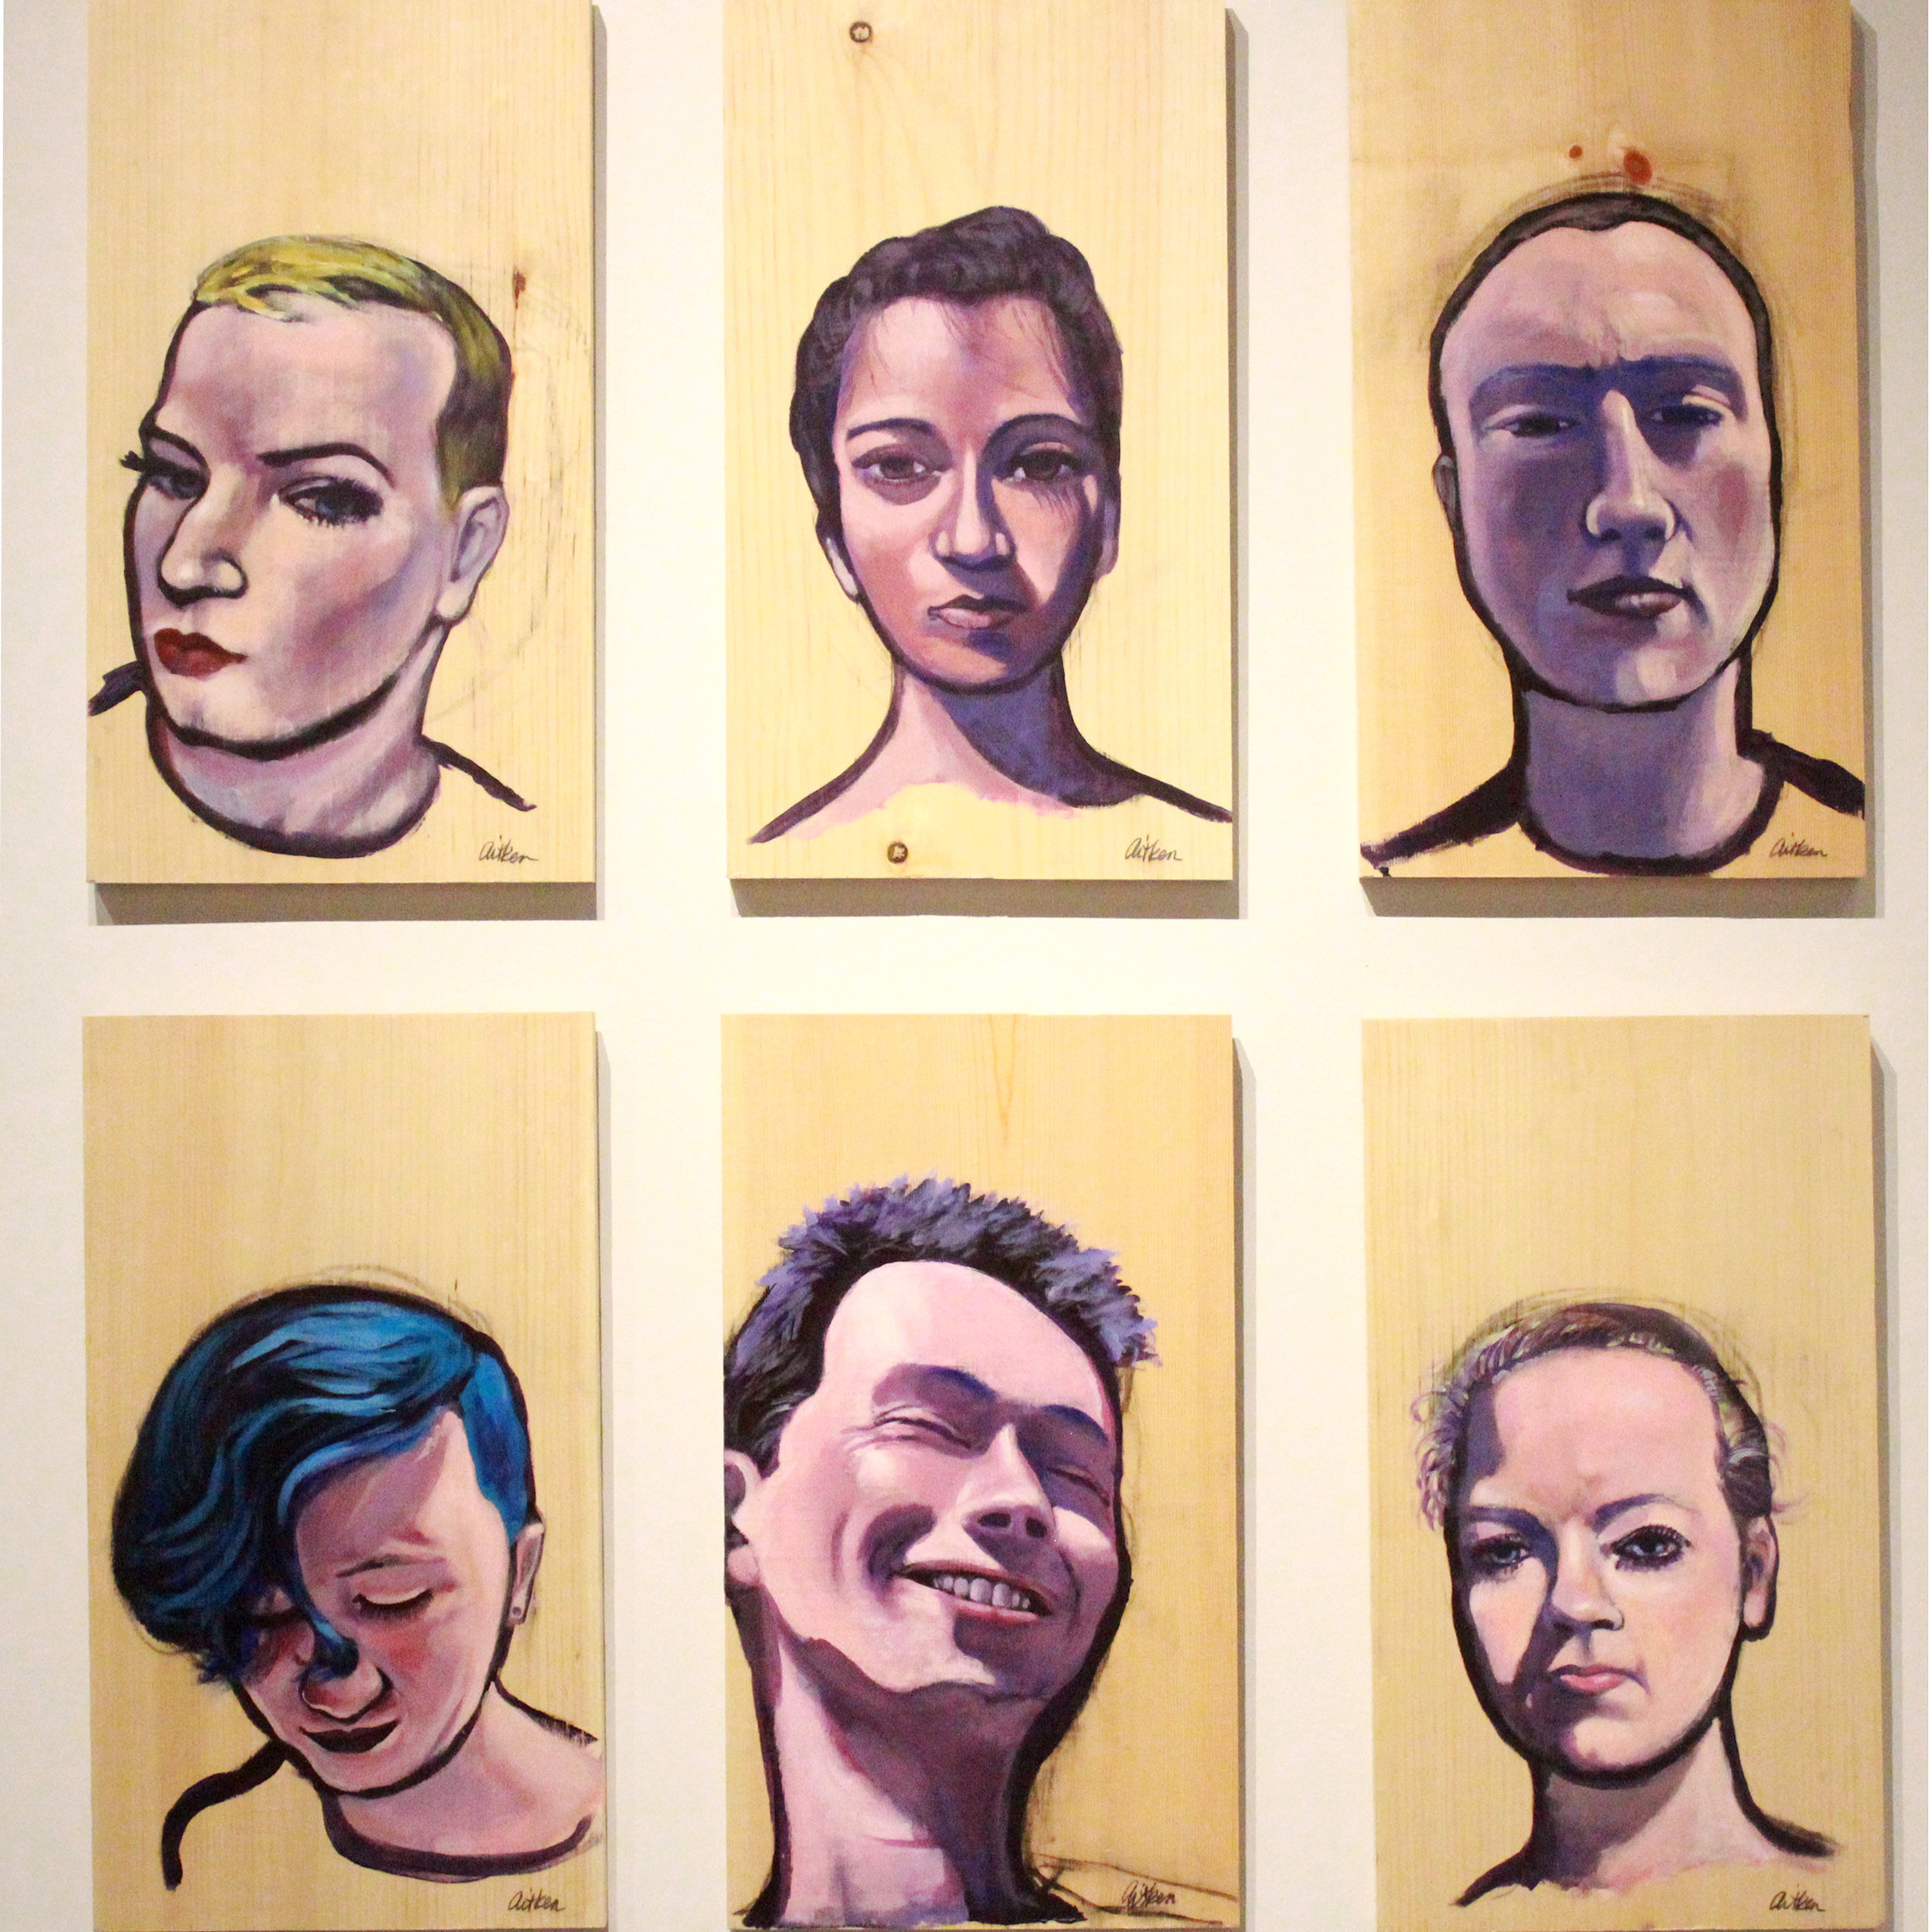 Christy Aitken Will (Marine), Ahelia(Surgeon, Ben(Atheist), Bo(Hairstylist), Emily(Plumber), Maddie(Non-Binary Teen) <br>2016 <br>Acrylic on wood <br>11 x 20 inches <br>Retail value: $400